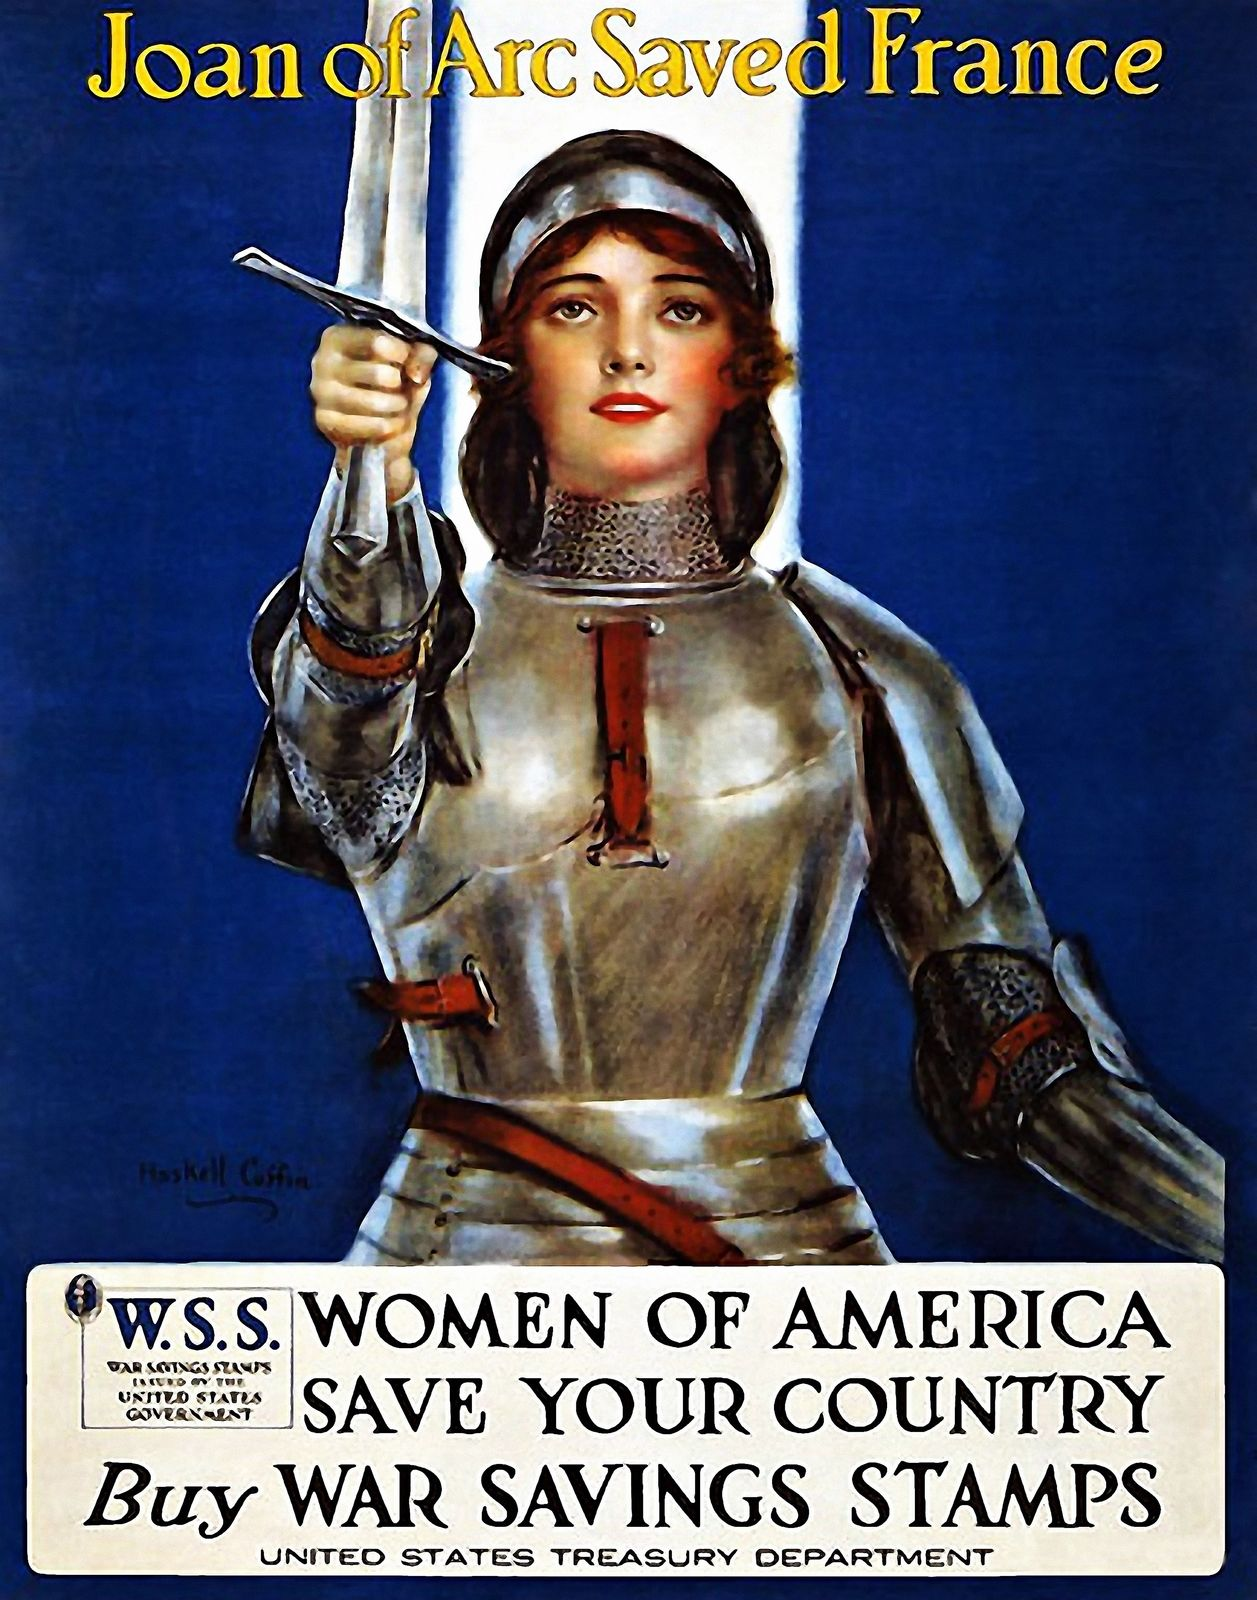 World War I propaganda poster by the United States Treasury using an image of Joan of Arc to sell War Savings Stamps.